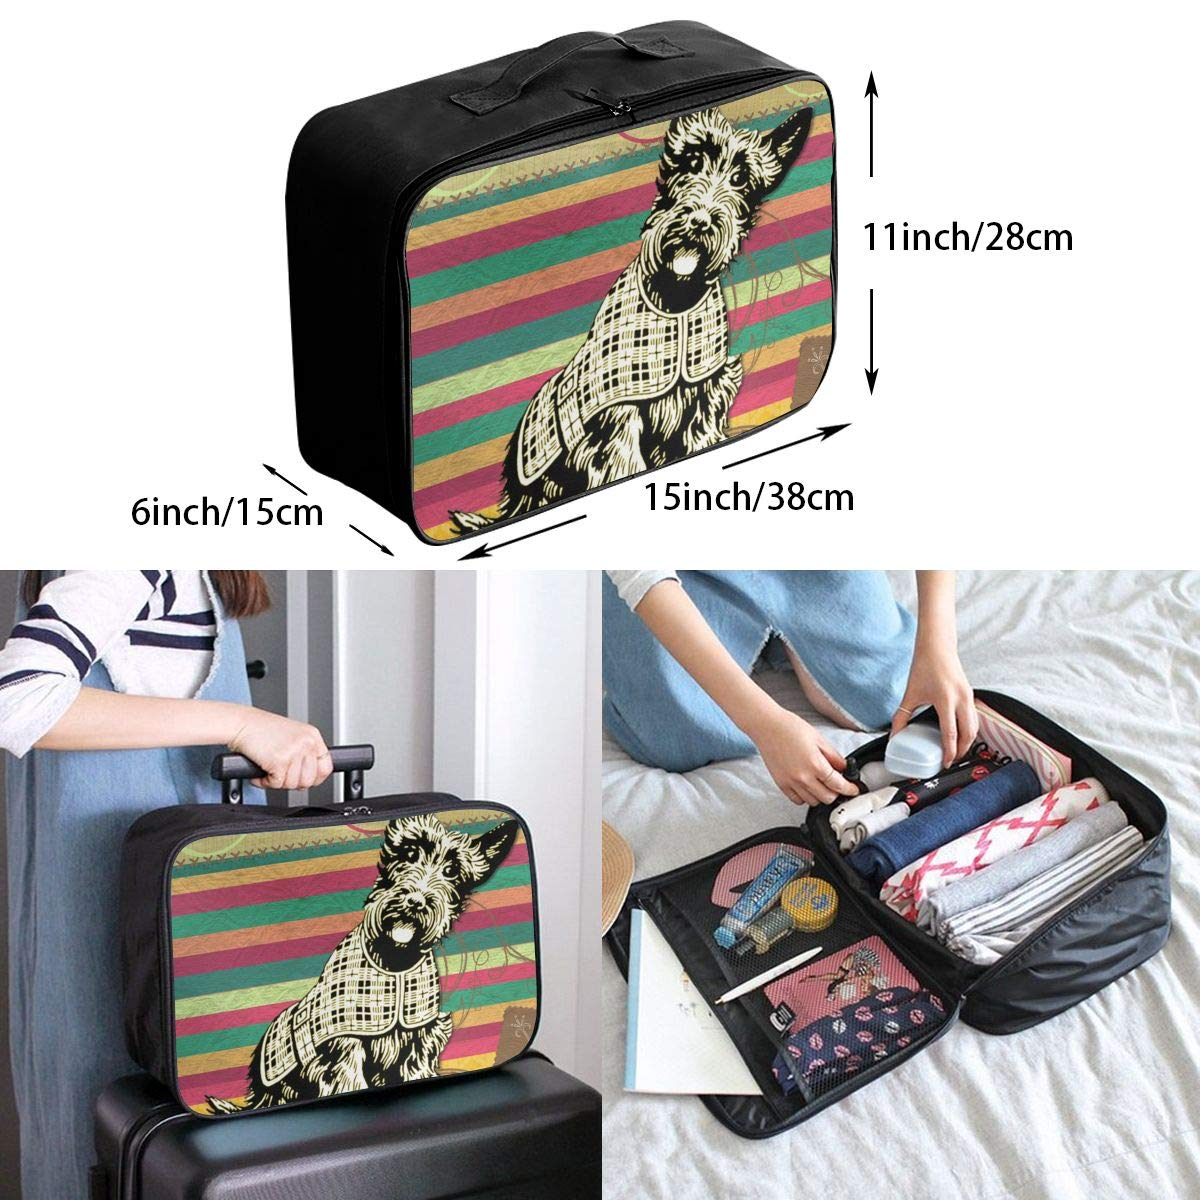 The Dog Looked at You with A Slanted Face Canvas Travel Weekender Bag,Fashion Custom Lightweight Large Capacity Portable Luggage Bag,Suitcase Trolley Bag